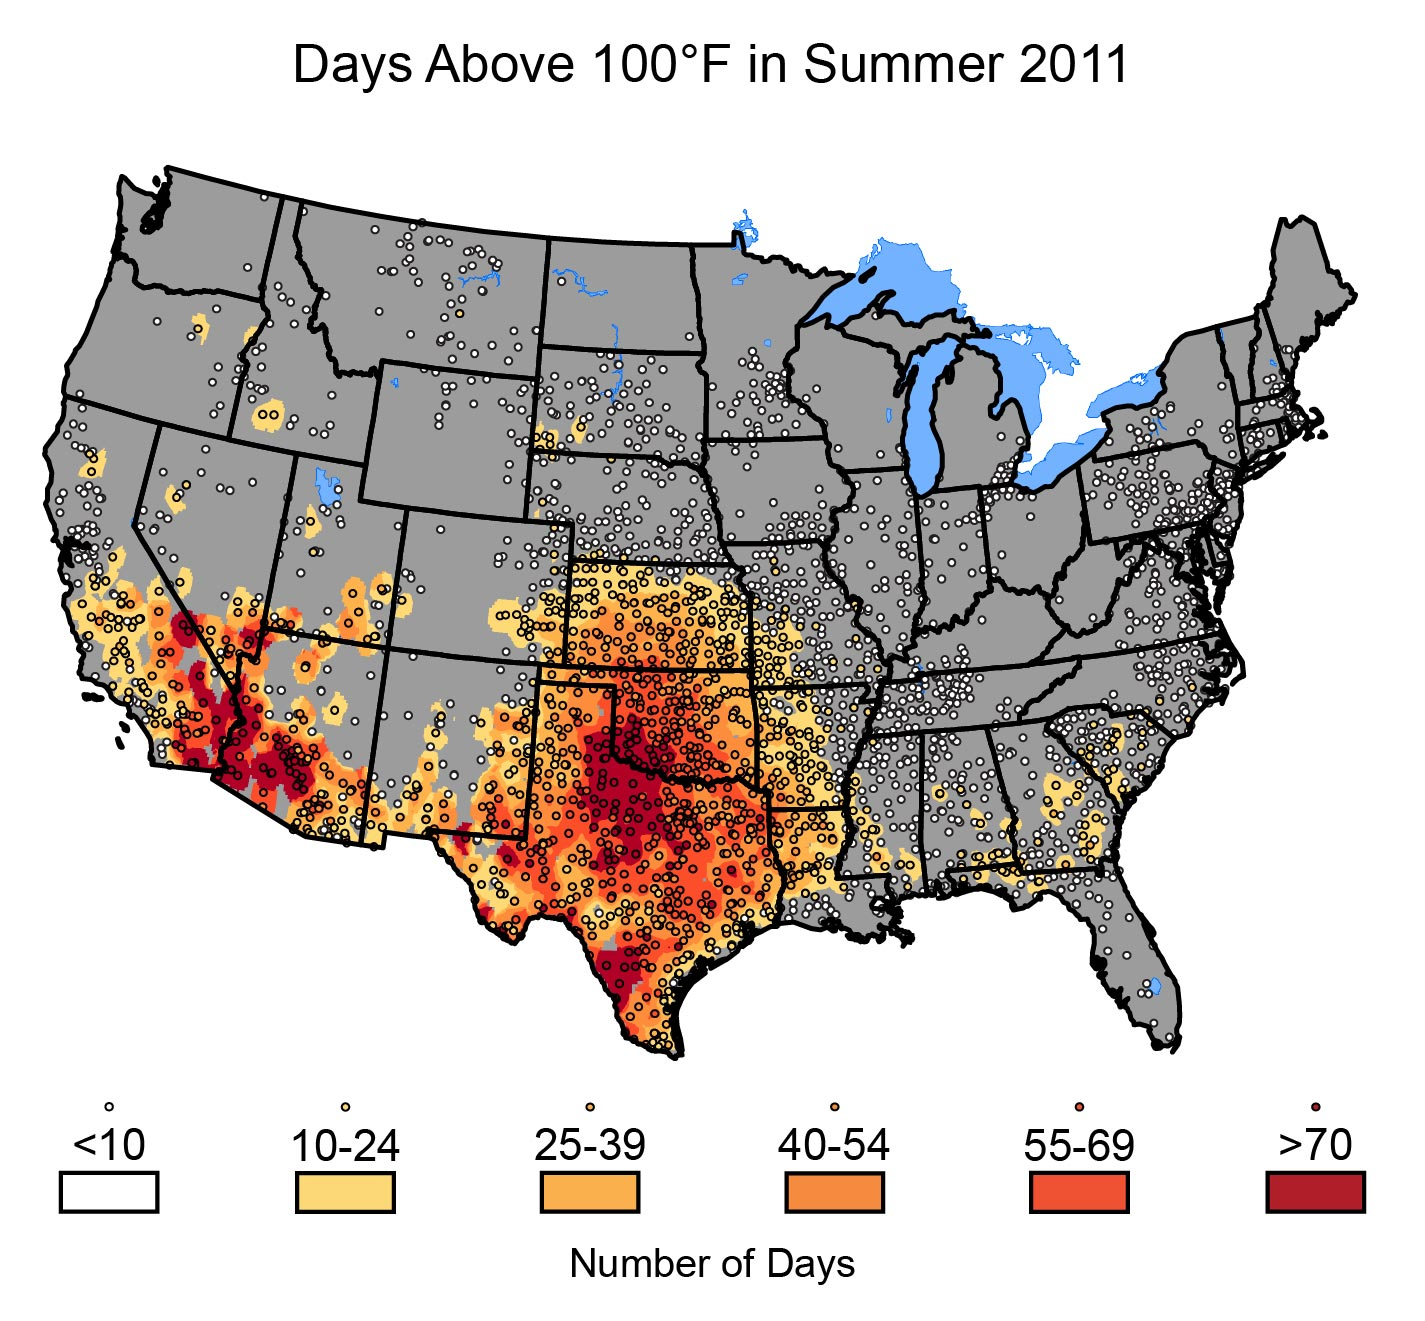 figure 19 10 days above 100of in summer 2011